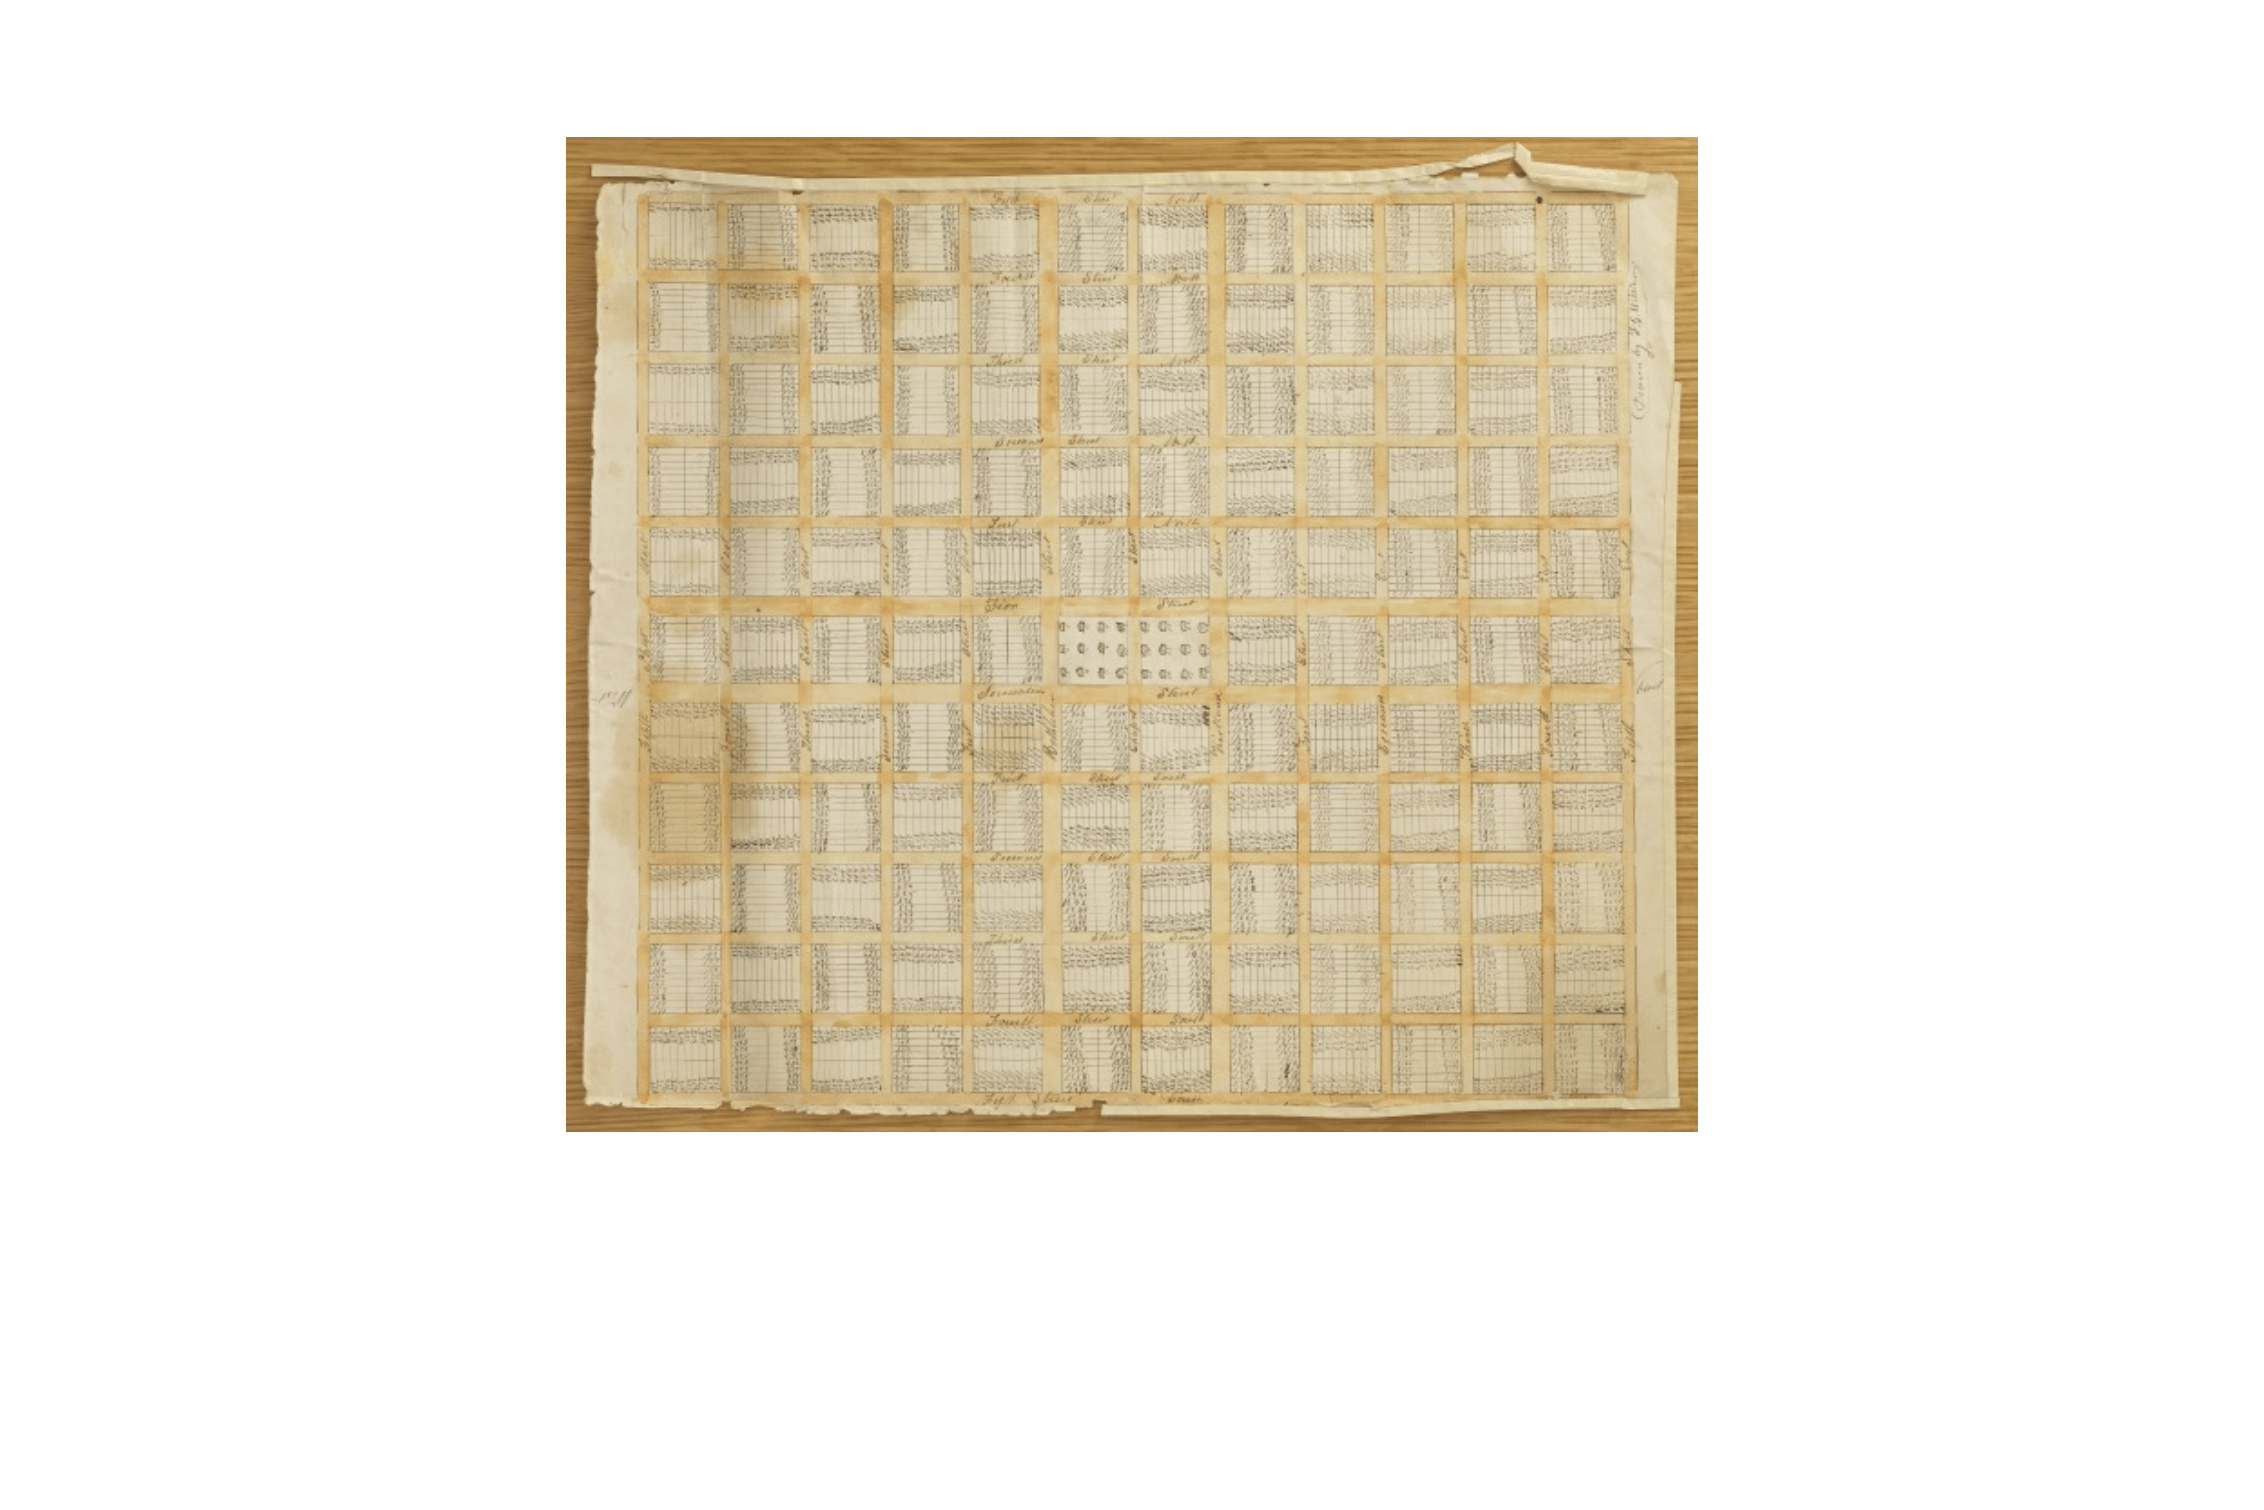 Revised Plat of the City of Zion by Joseph Smith